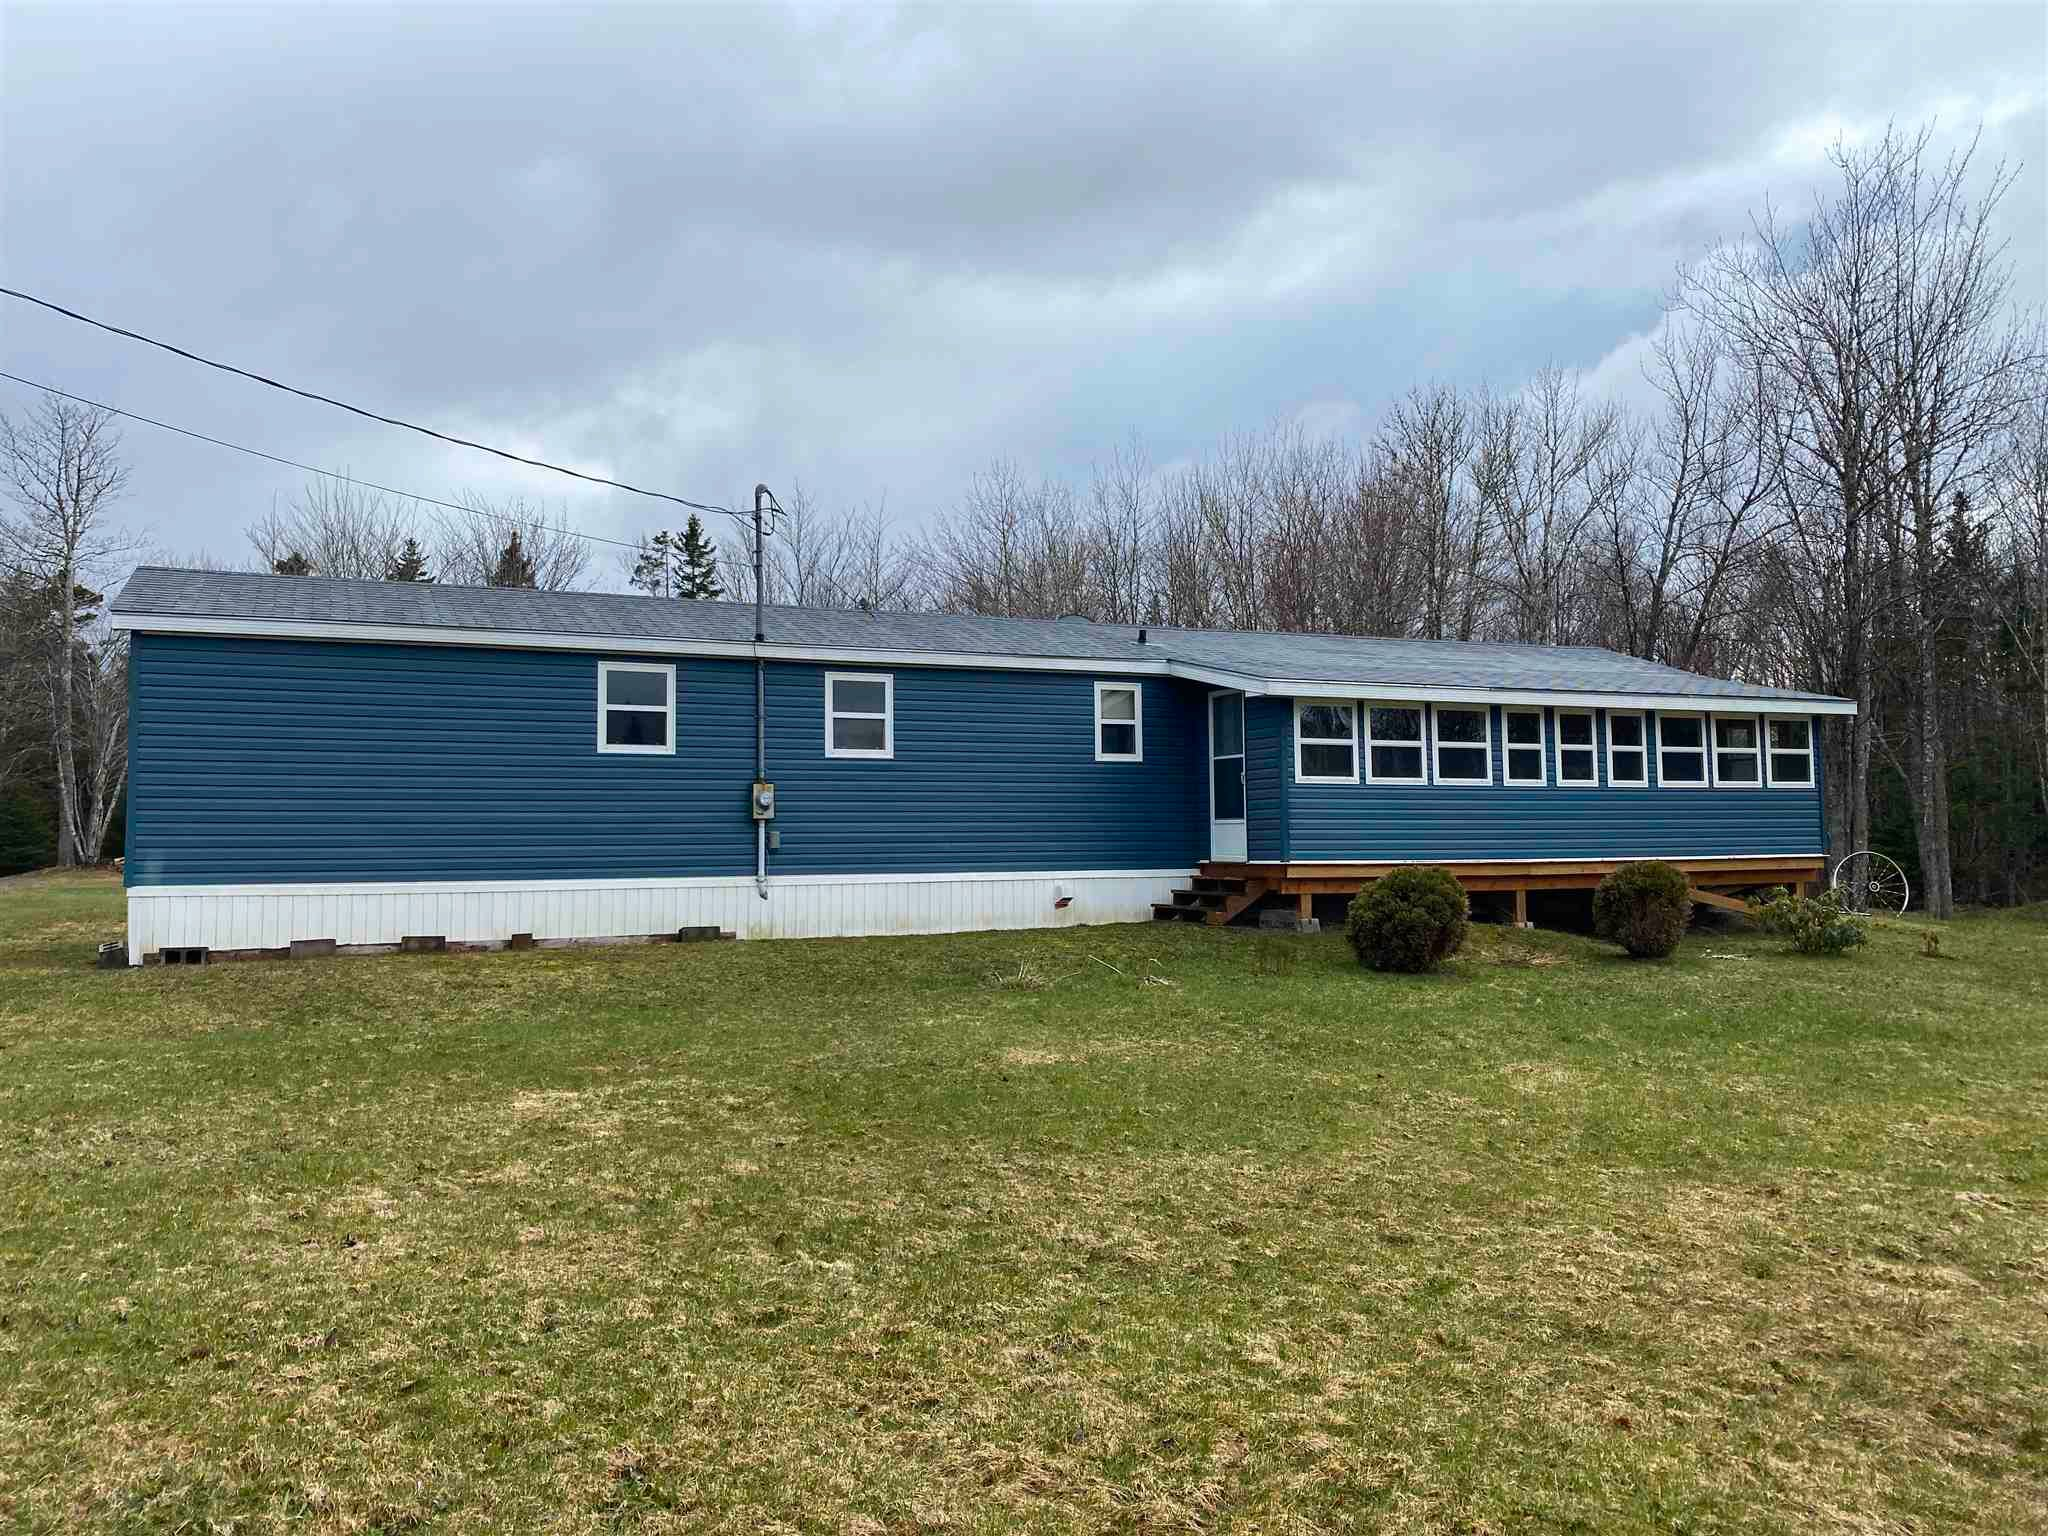 Main Photo: 1020 Second Division Road in Scotch Hill: 108-Rural Pictou County Residential for sale (Northern Region)  : MLS®# 202106972